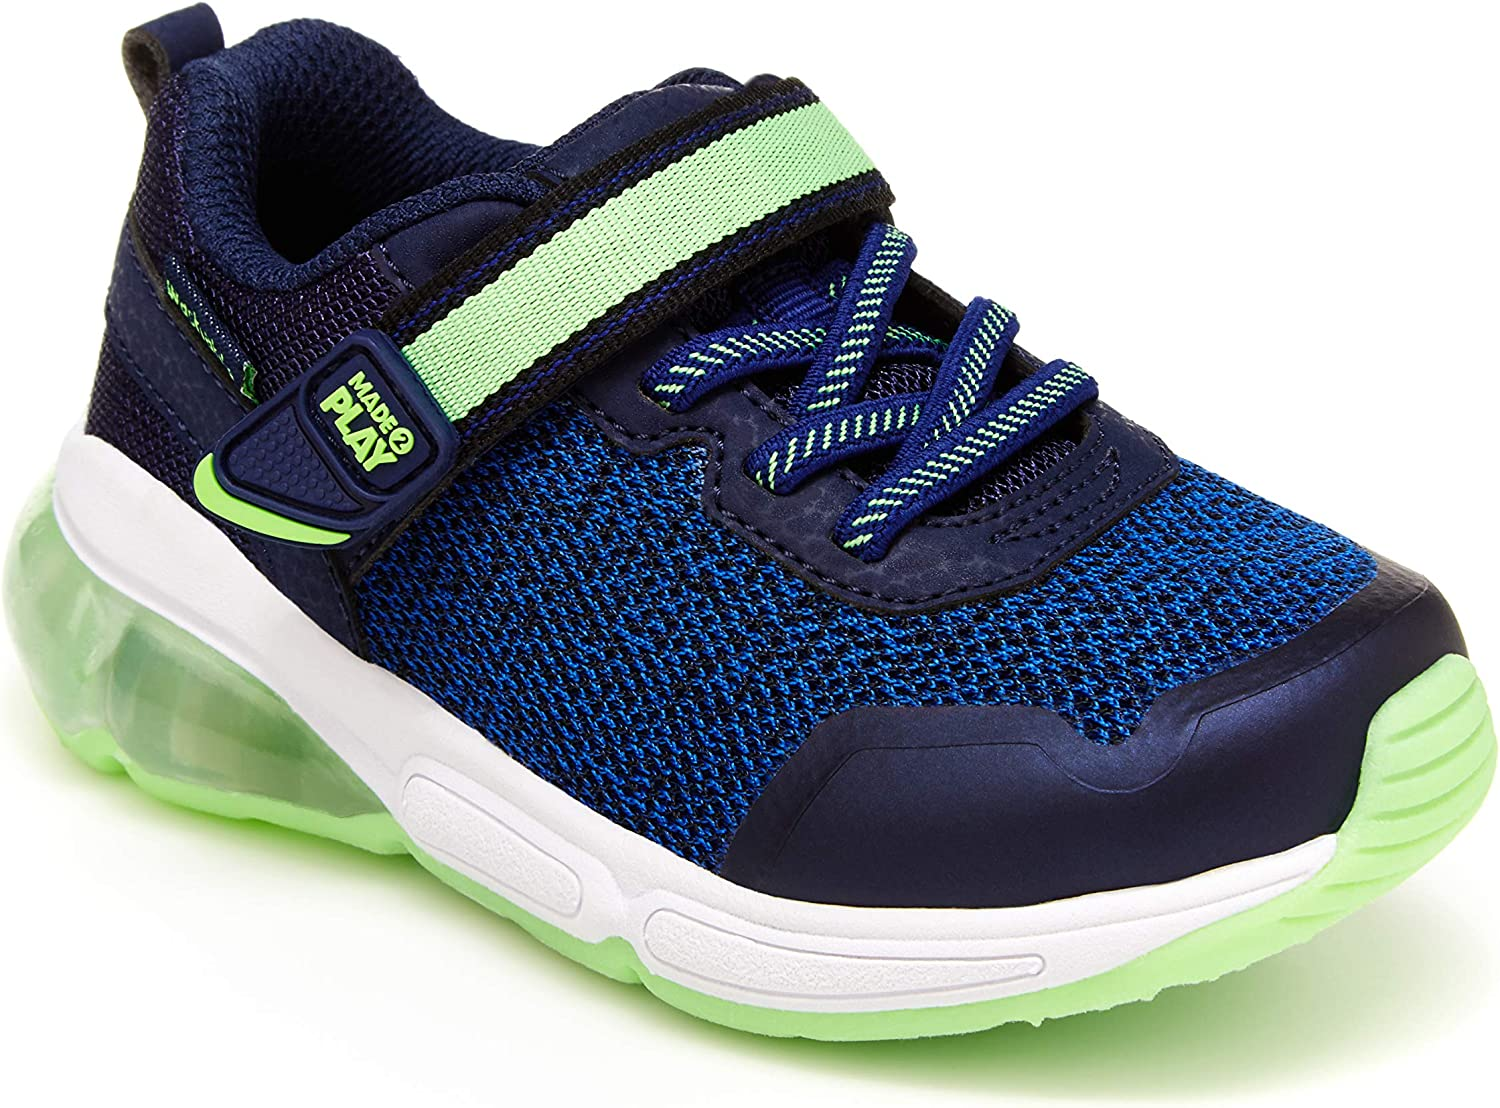 Stride Rite Boy's Made2Play Radiant Bounce Sneaker, Blue/Green, 9.5 Wide Toddler